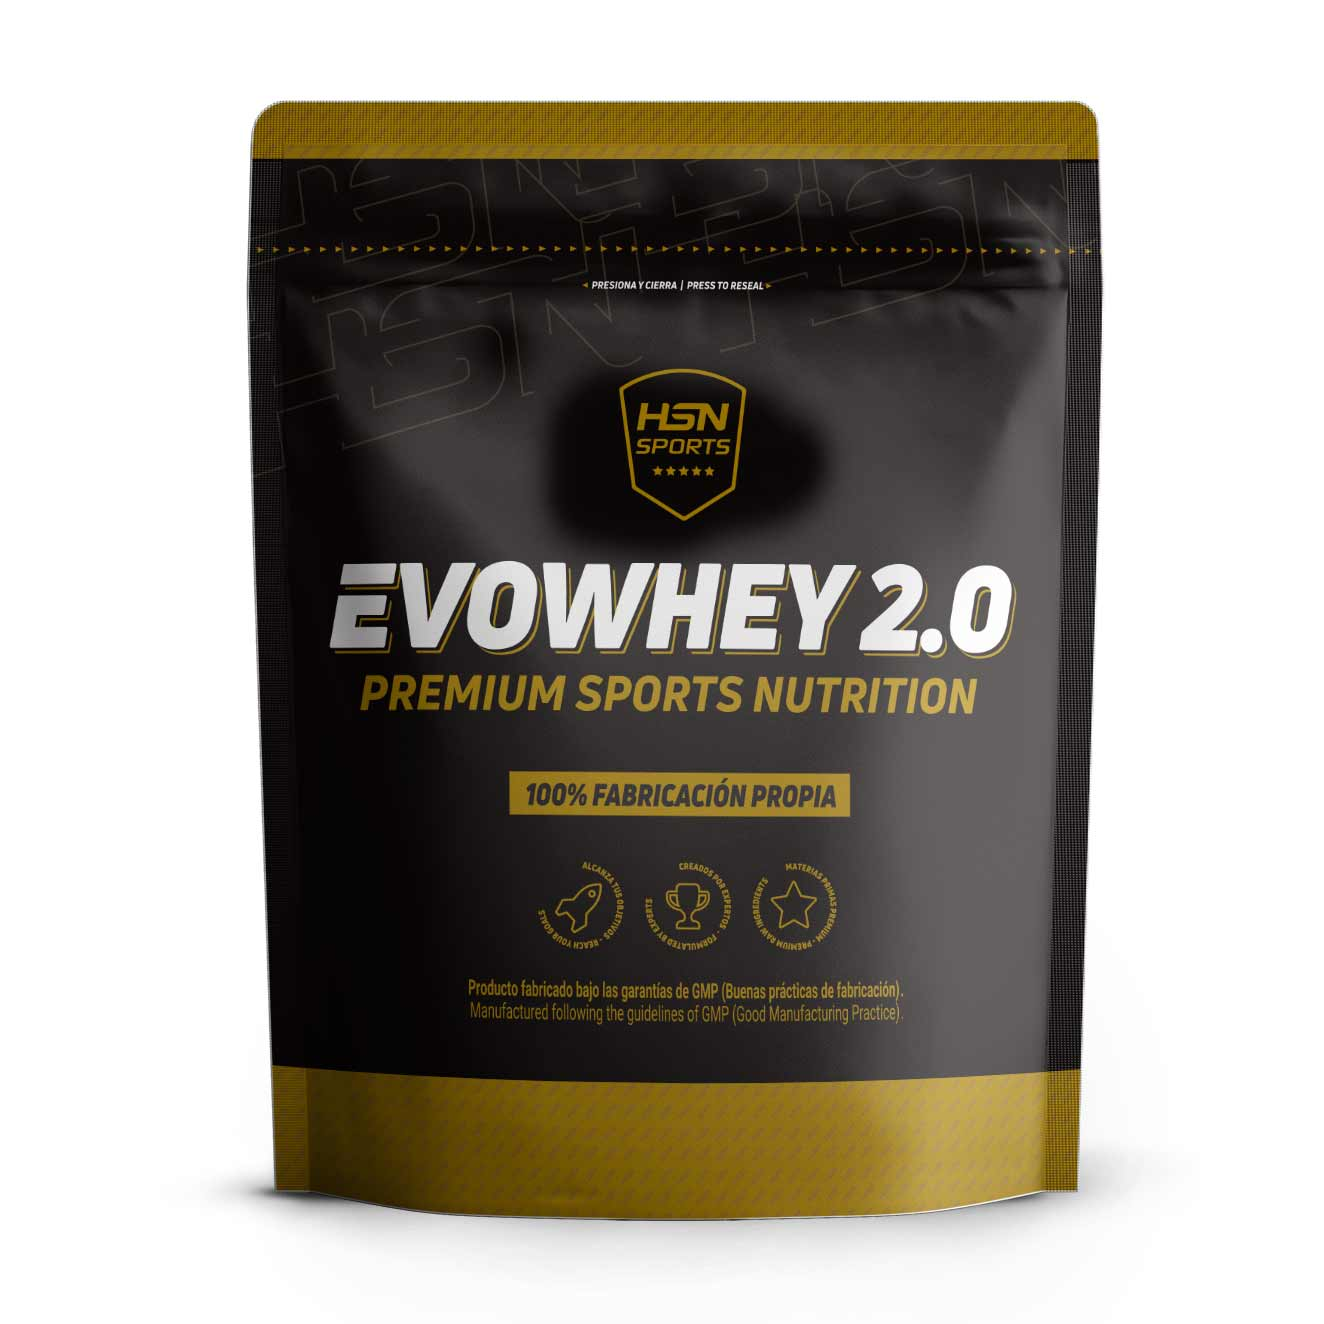 https://cdn.hsnstore.com/media/catalog/product/0/1/01-evowhey-general_1.jpg